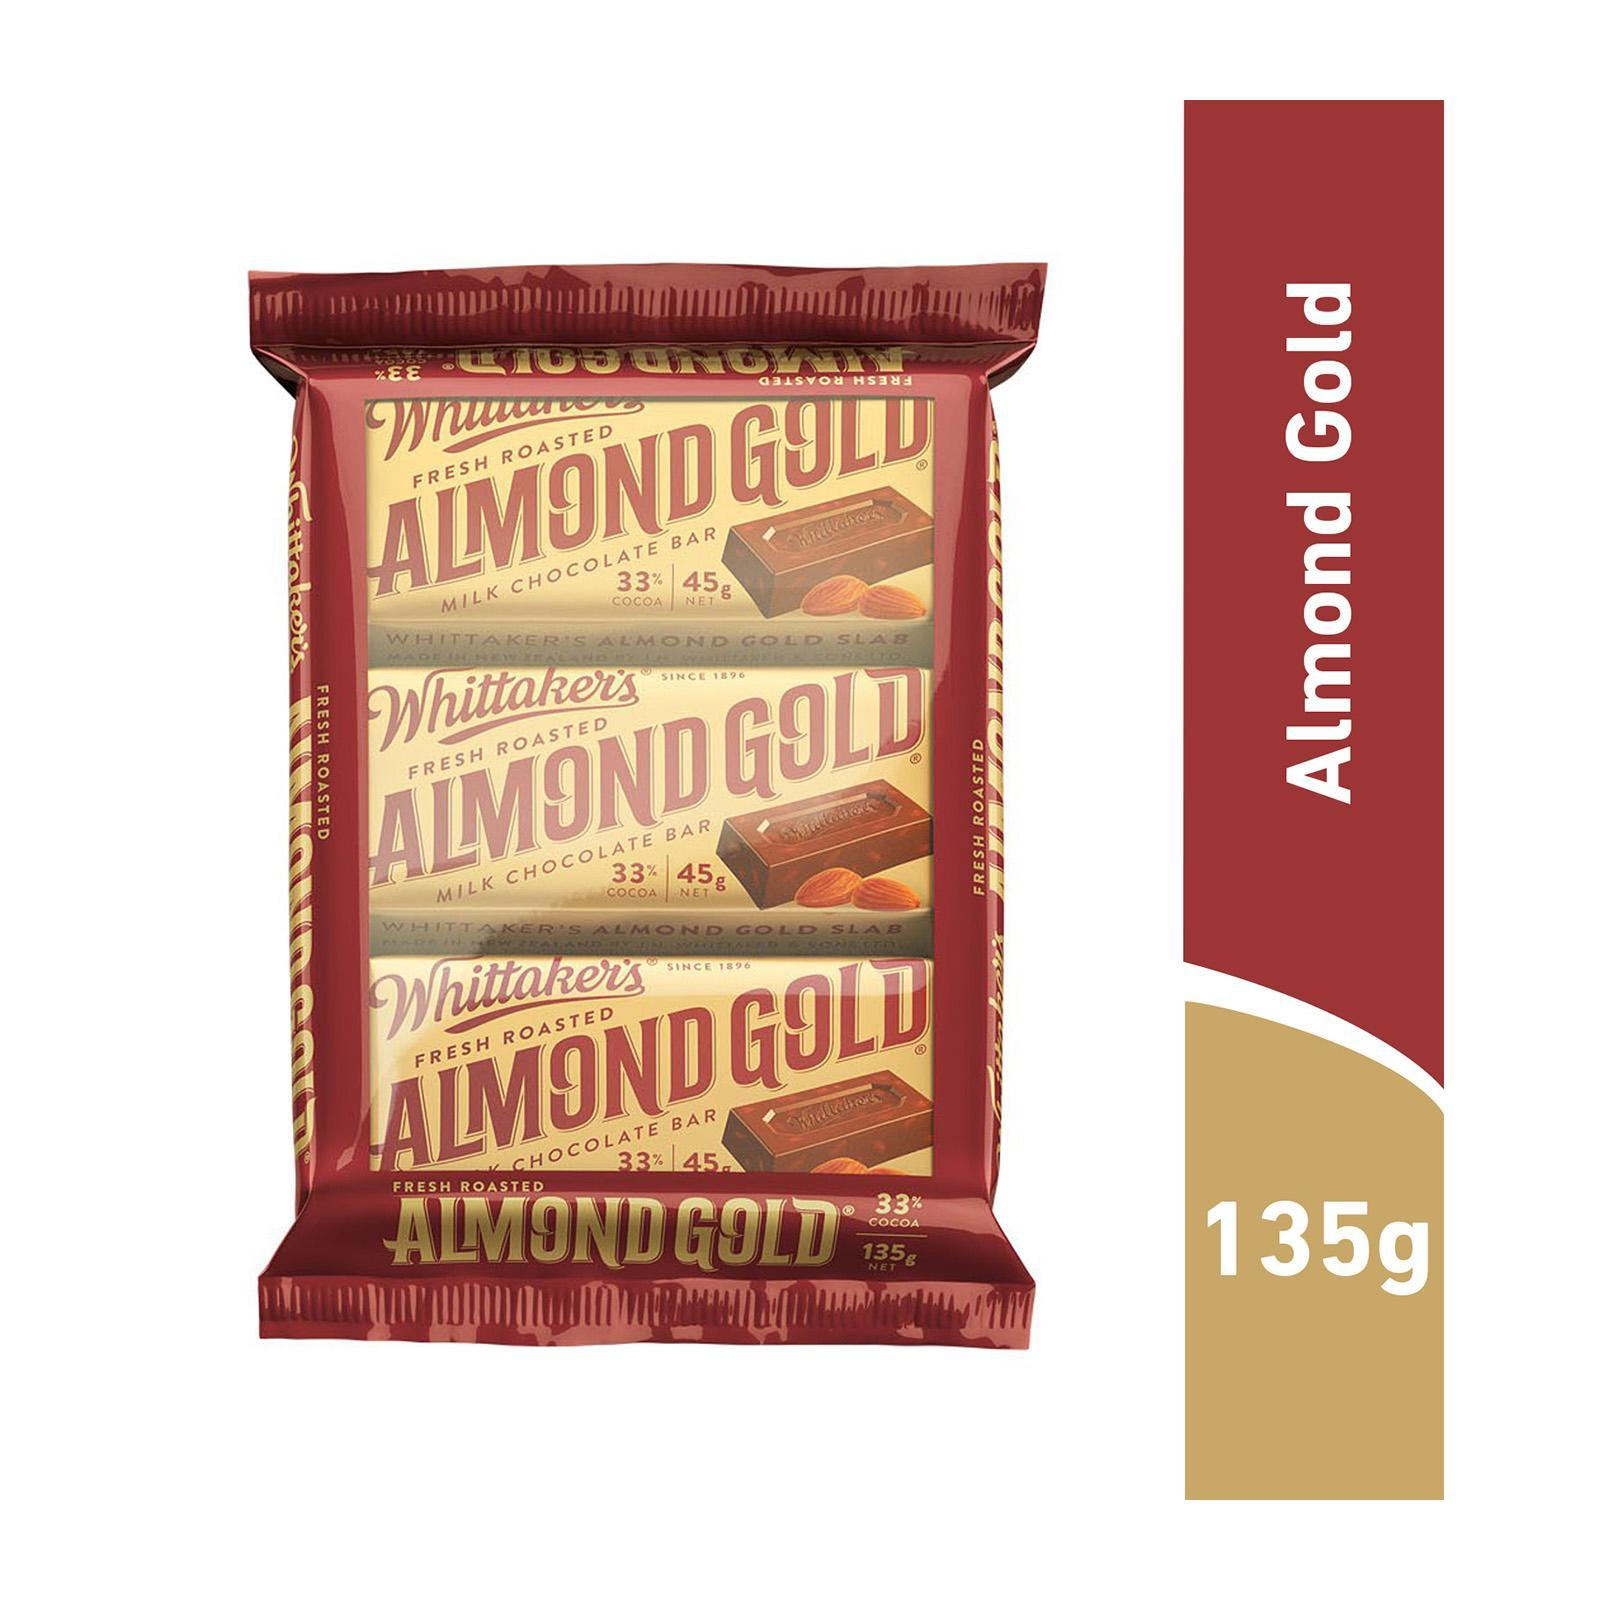 Whittaker's Almond Gold Multipack Chocolate